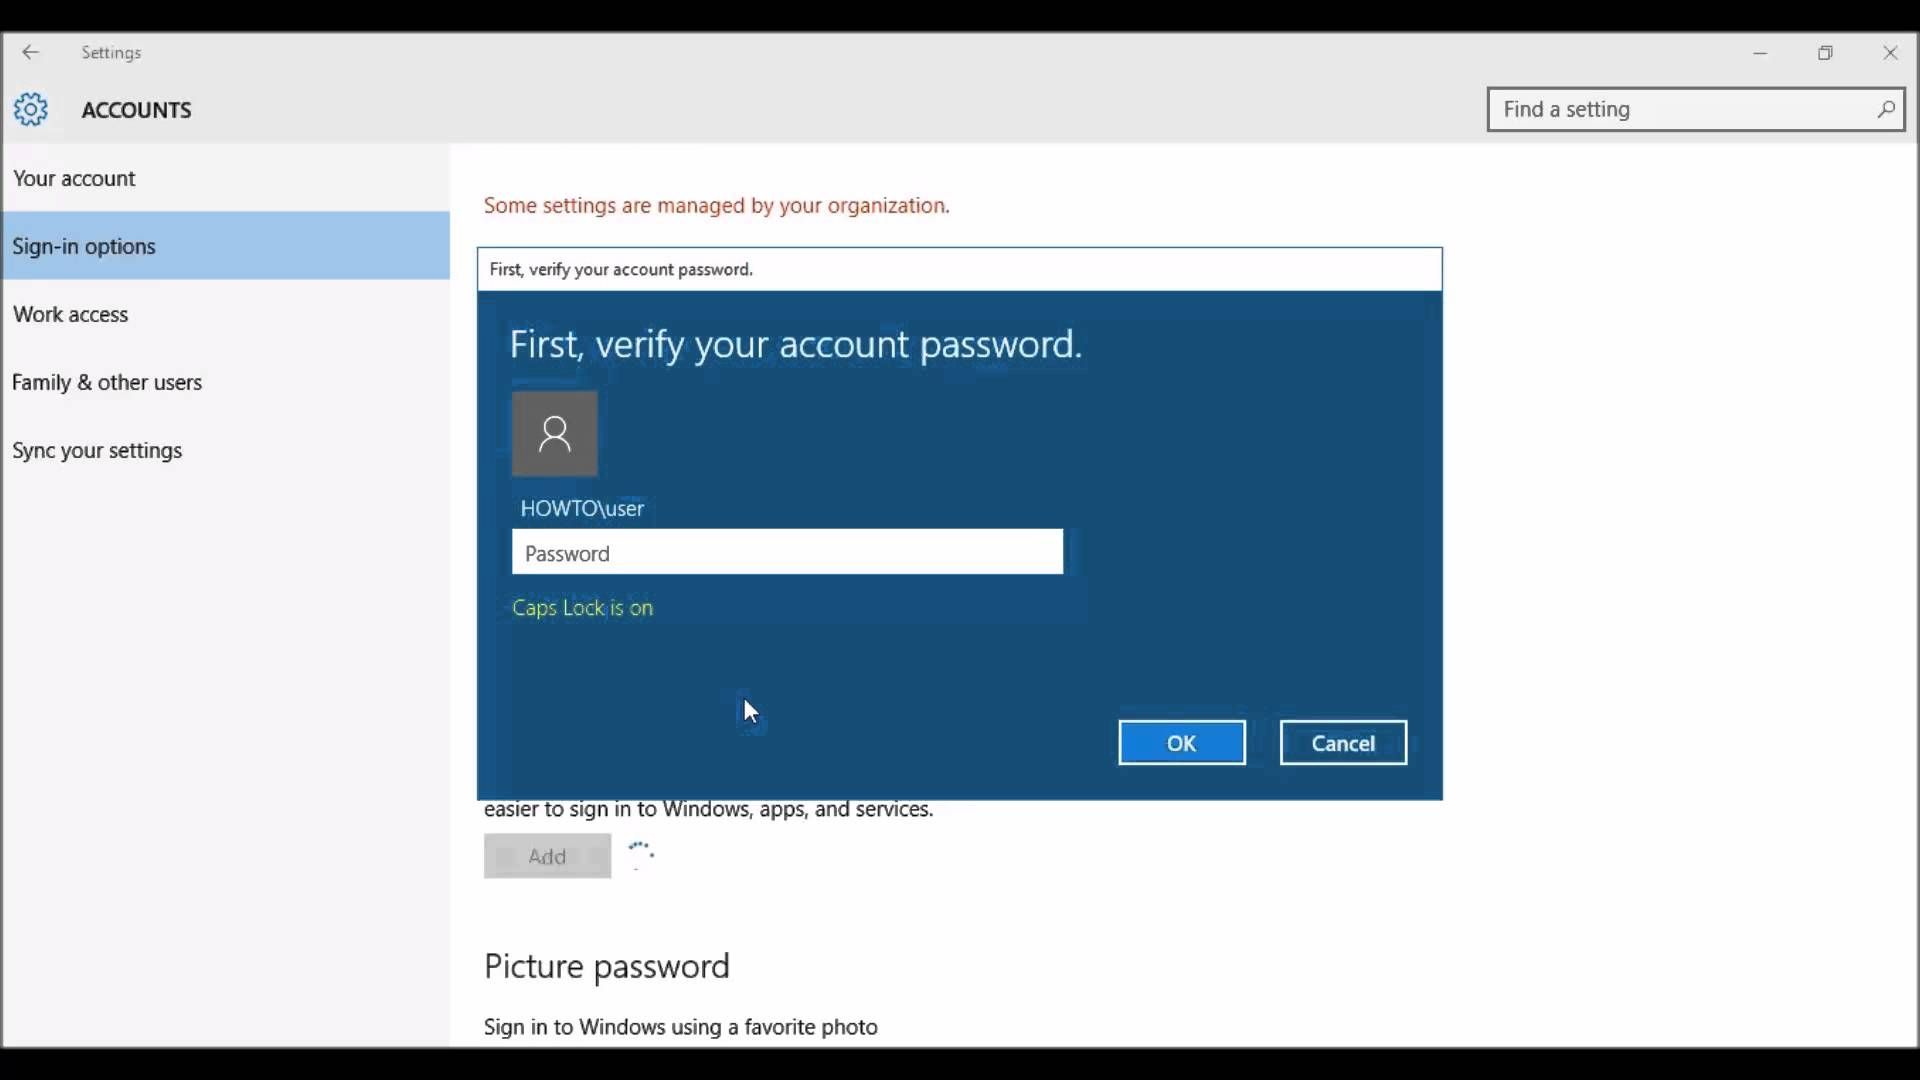 How to Add sign in PIN in Windows 10. How to Add a PIN to